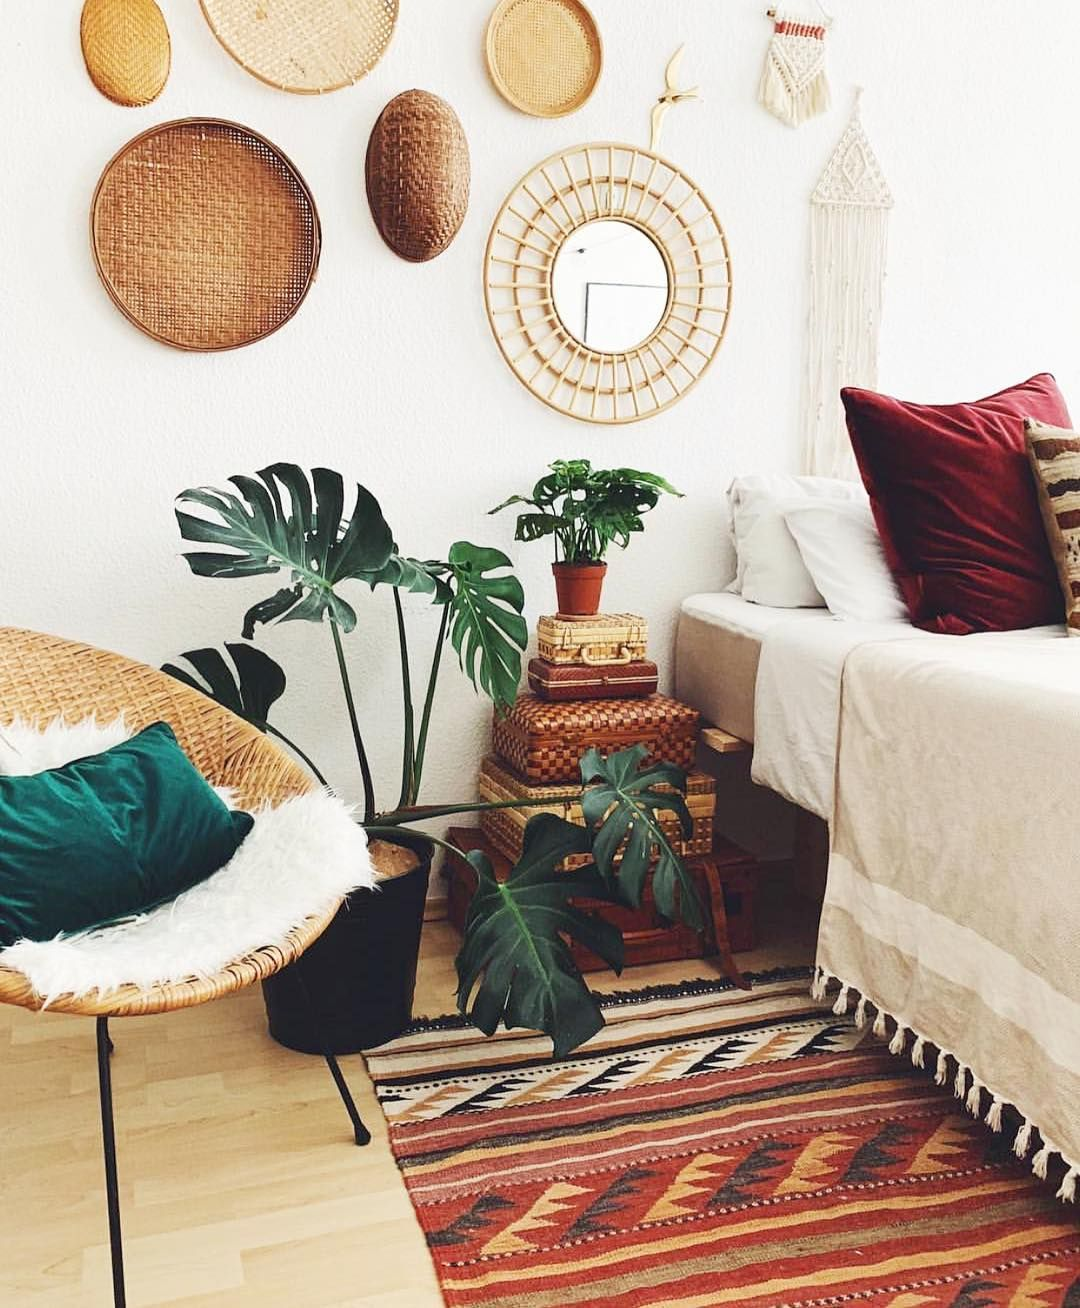 Bohemian Bedroom Decor Has Become One Of The Most Coveted Aesthetics On Pinterest And Instagram But It S Bohemian Bedroom Decor Bedroom Decor Bohemian Bedroom